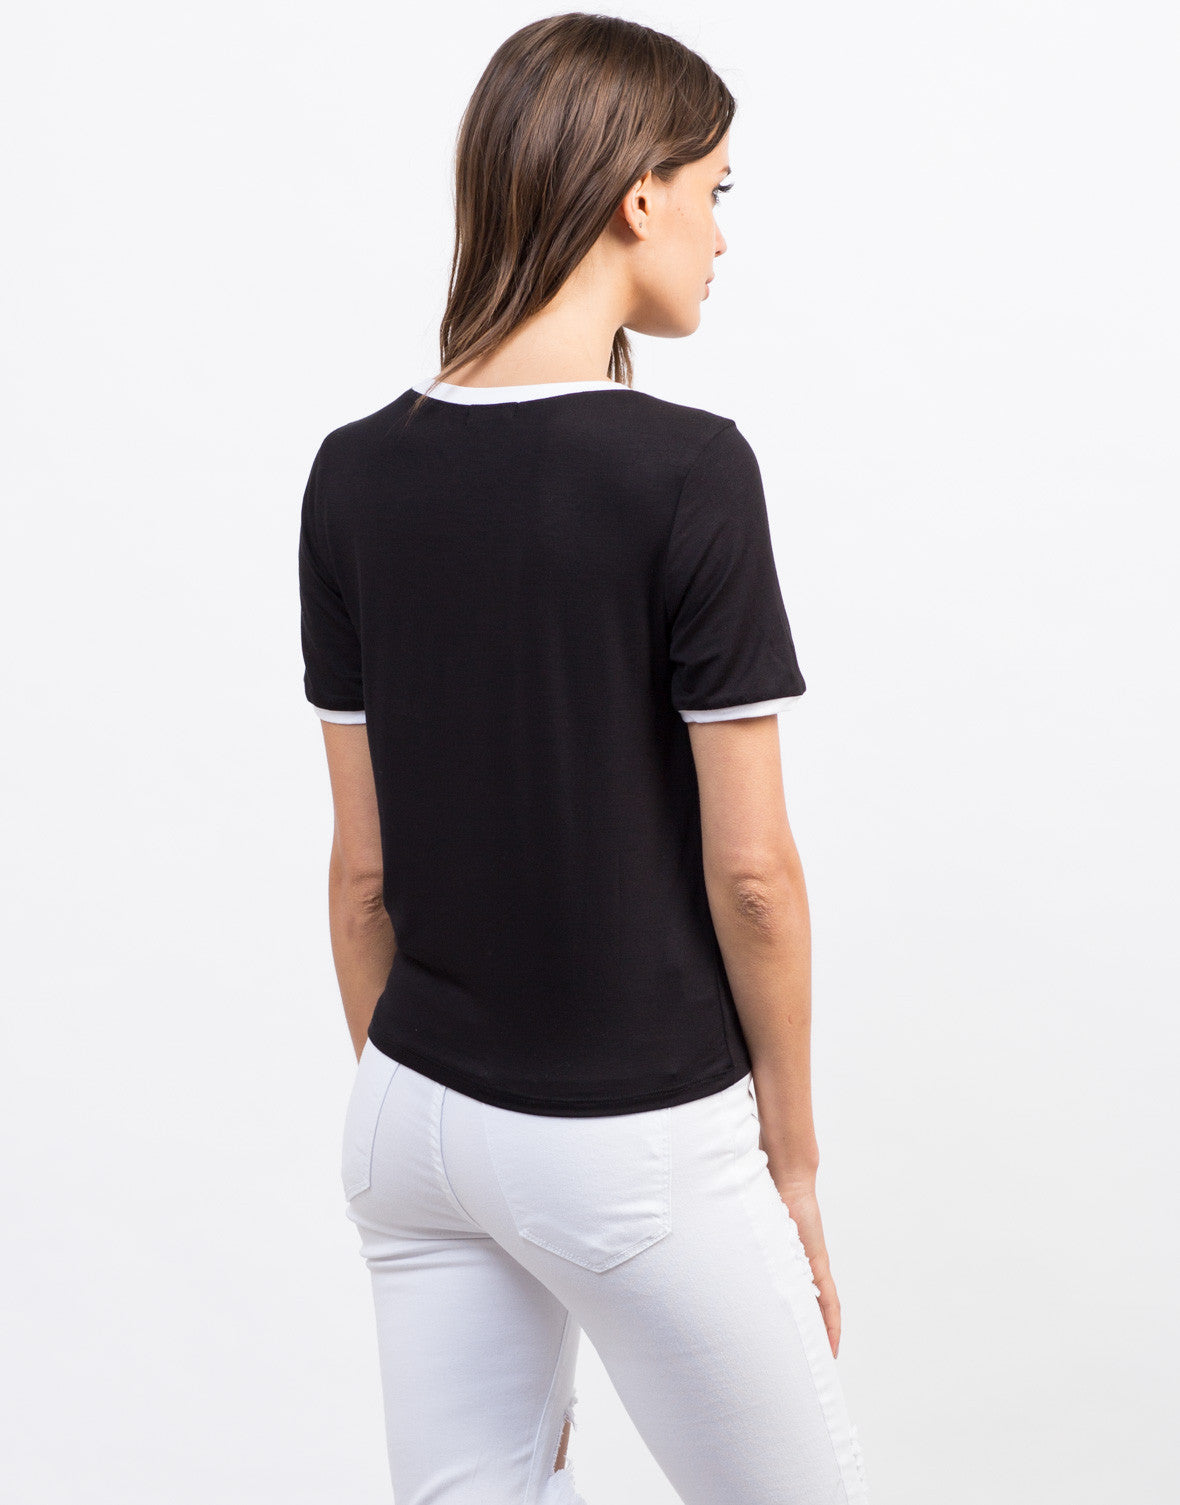 Back View of Contrast Mermaid Tee